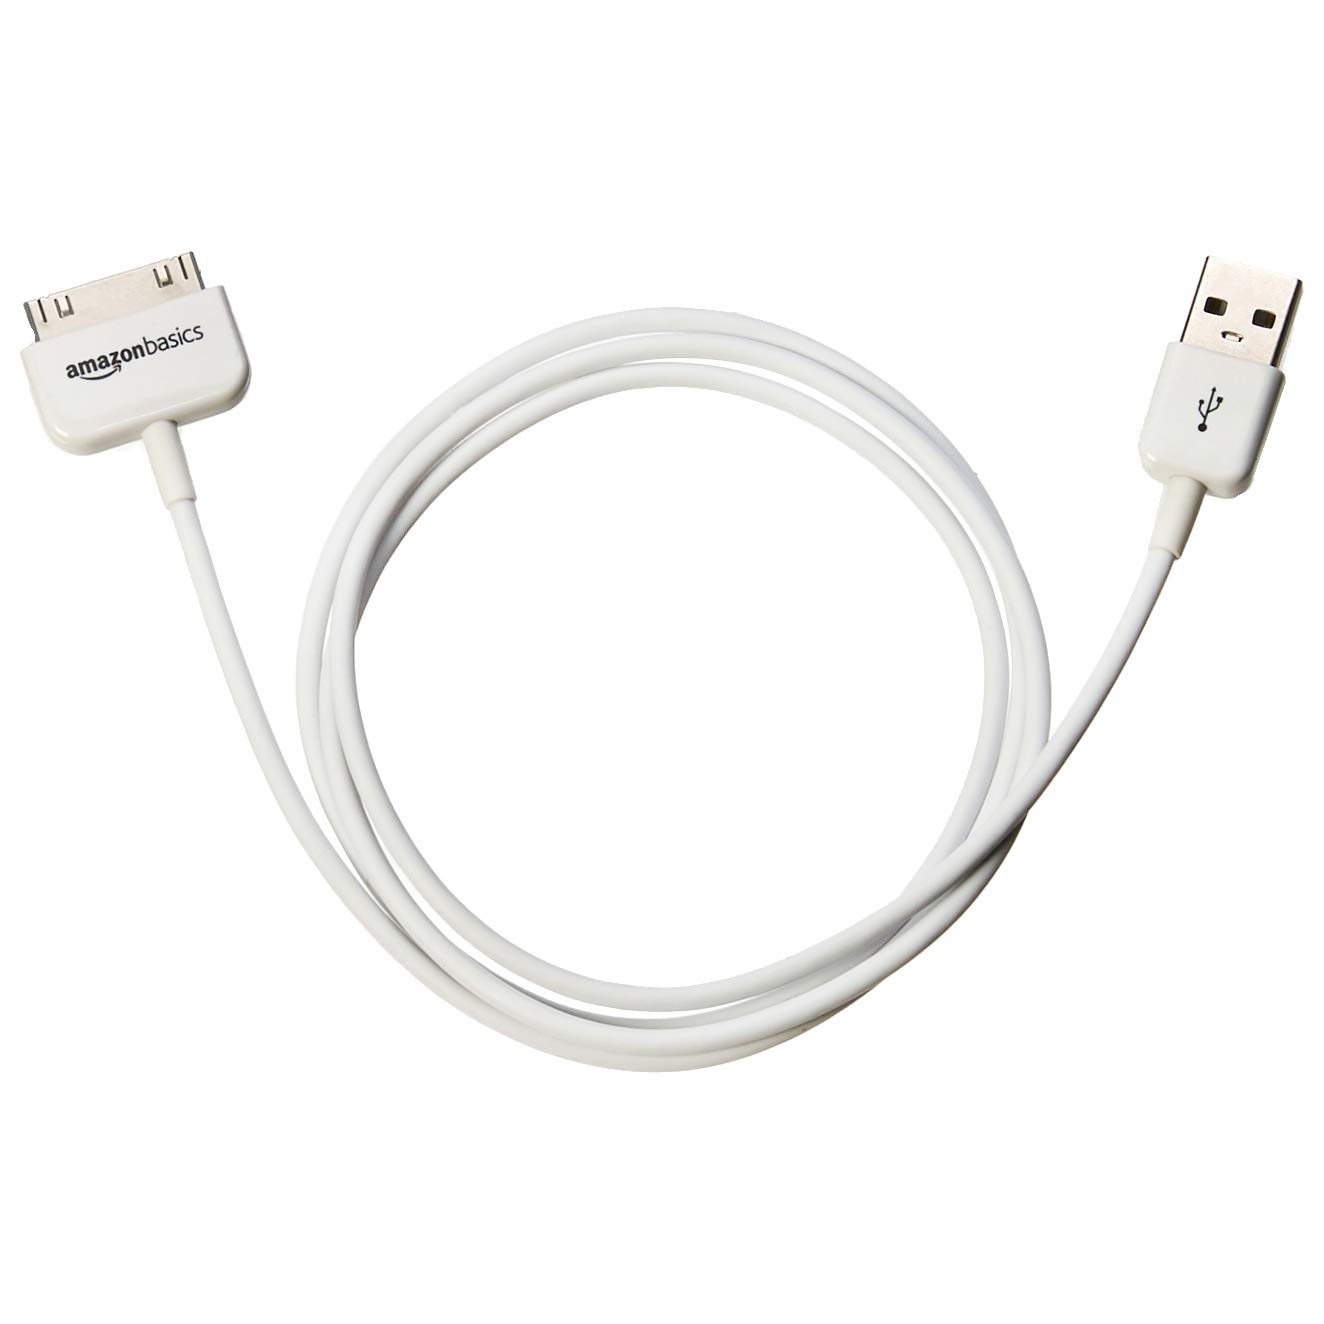 AmazonBasics Apple Certified 30-Pin to USB Cable for Apple iPhone 4, iPod, and iPad 3rd Generation - 3.2 Feet (1.0 Meter)